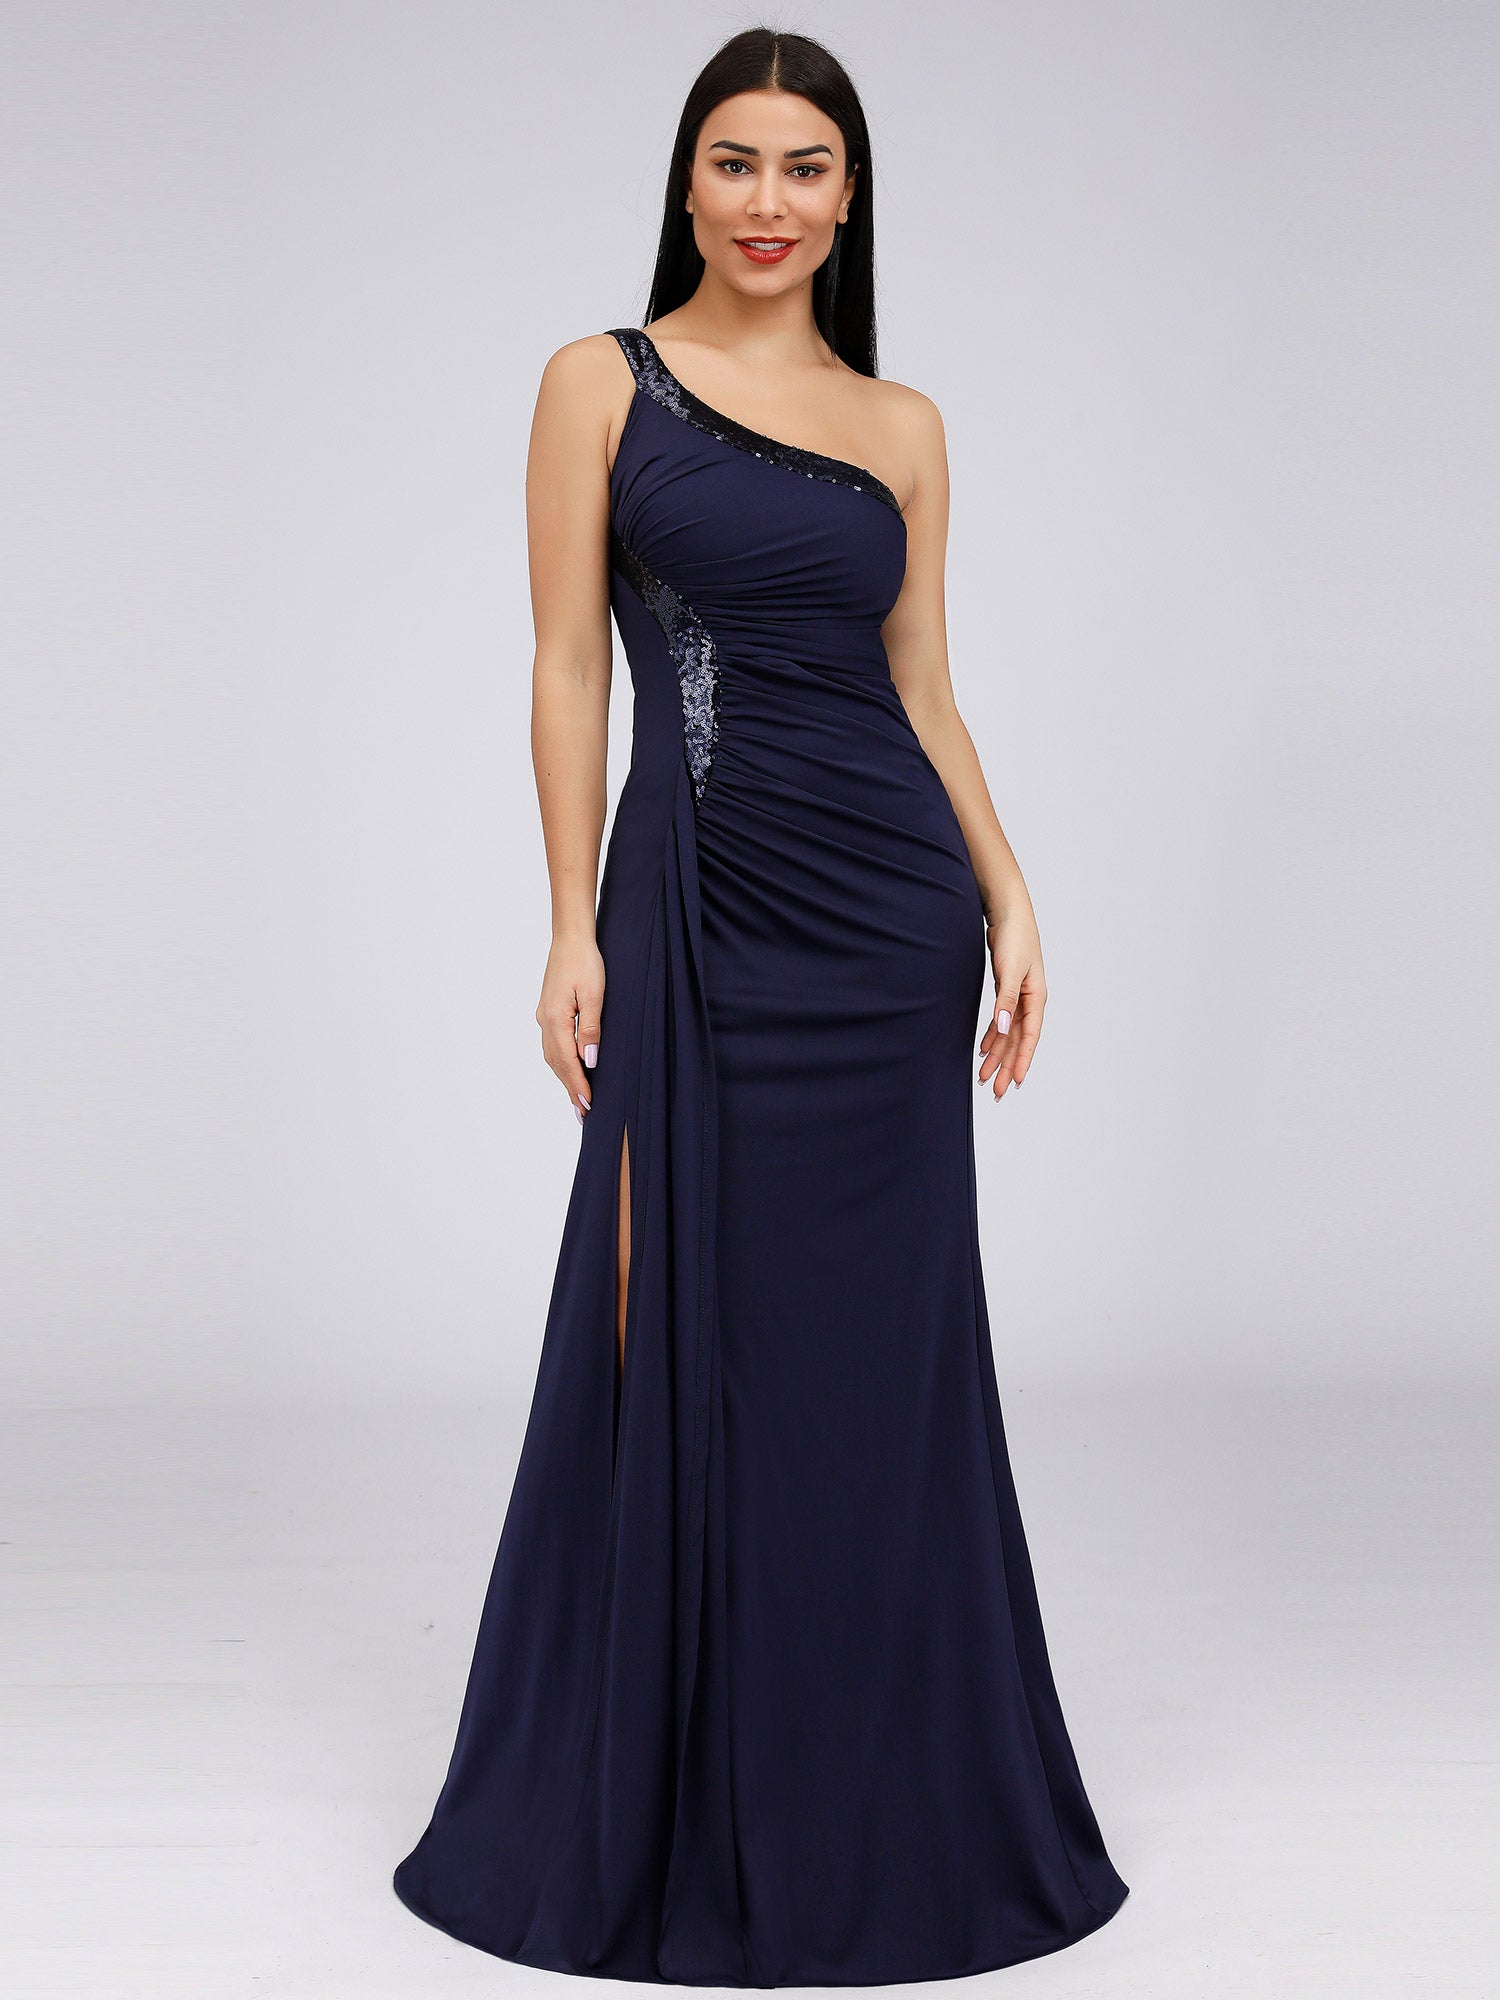 UK Ever-pretty One-shoulder Evening Split Prom Gowns Cocktail Bodycon Prom Gowns